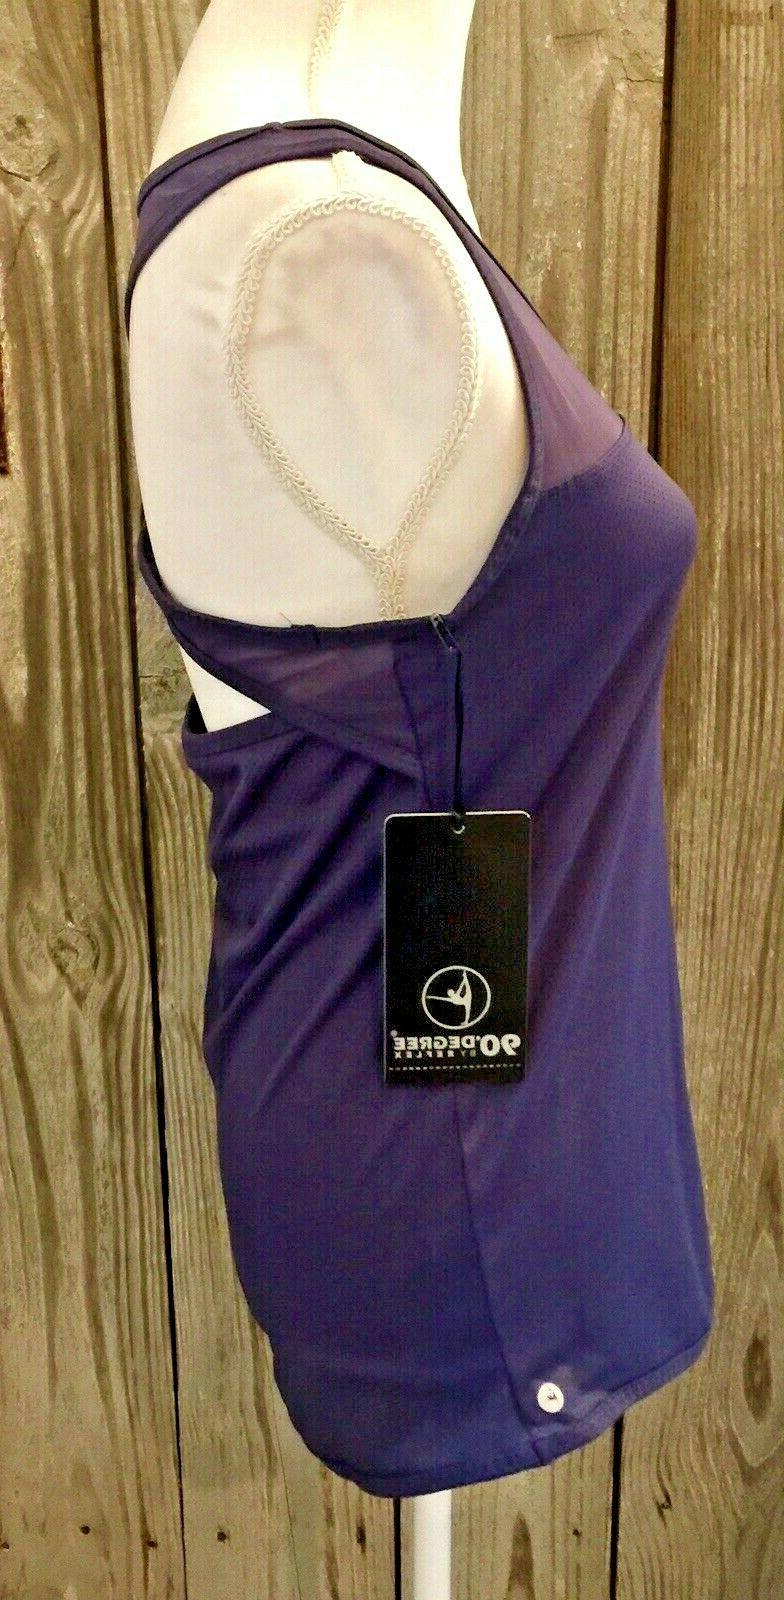 90 Degree By NEW Women's Athletic Racerback Top